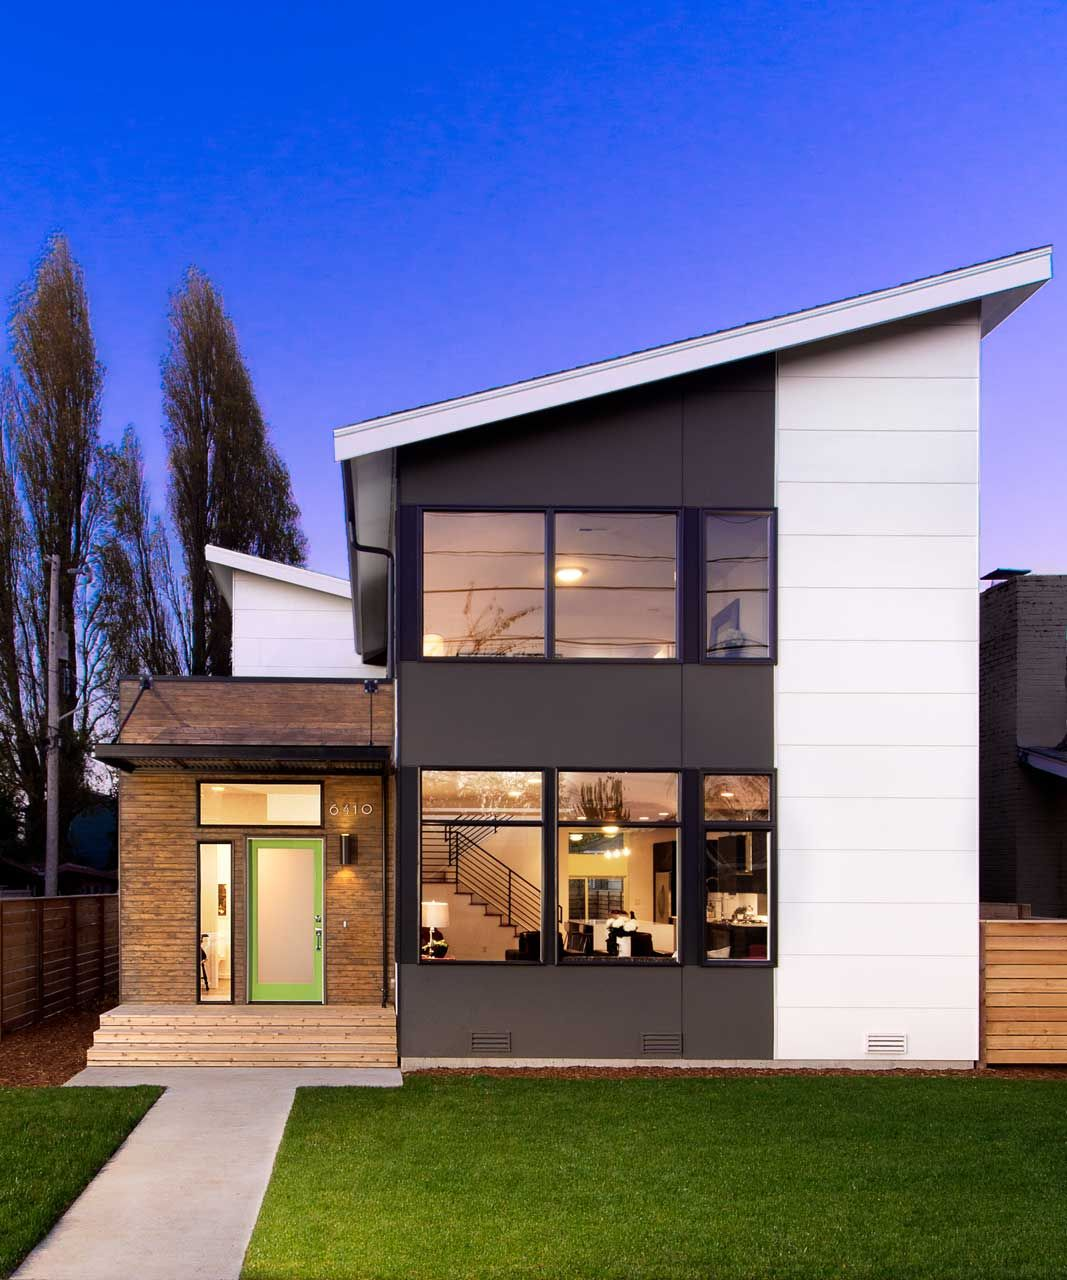 Alki beach house seattle alloy design group 1 roof deck for Beach house plans rooftop deck